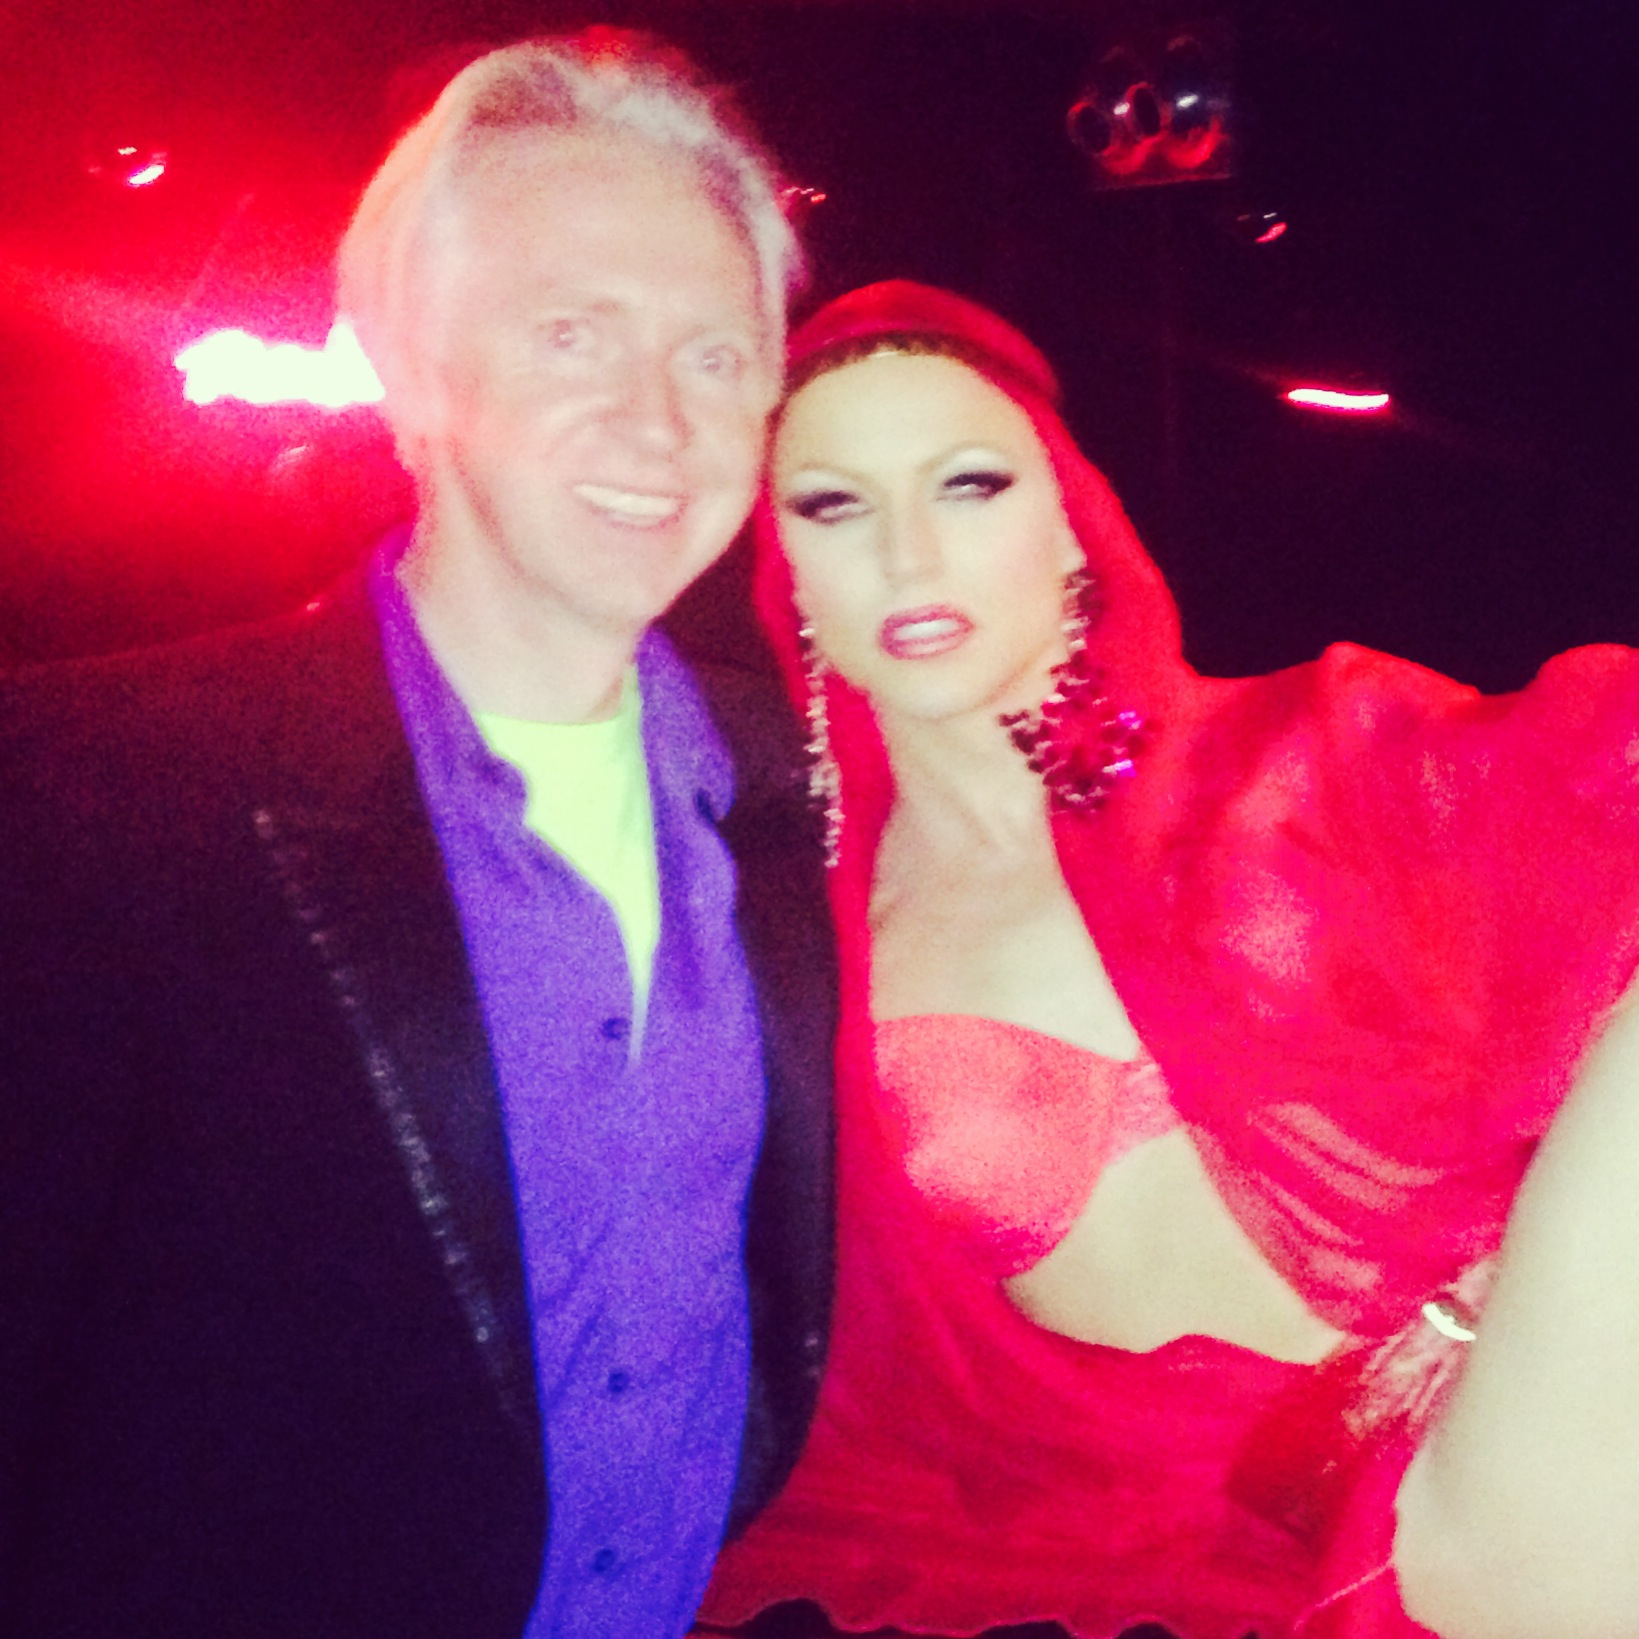 Philip Treacy & Courtney Act